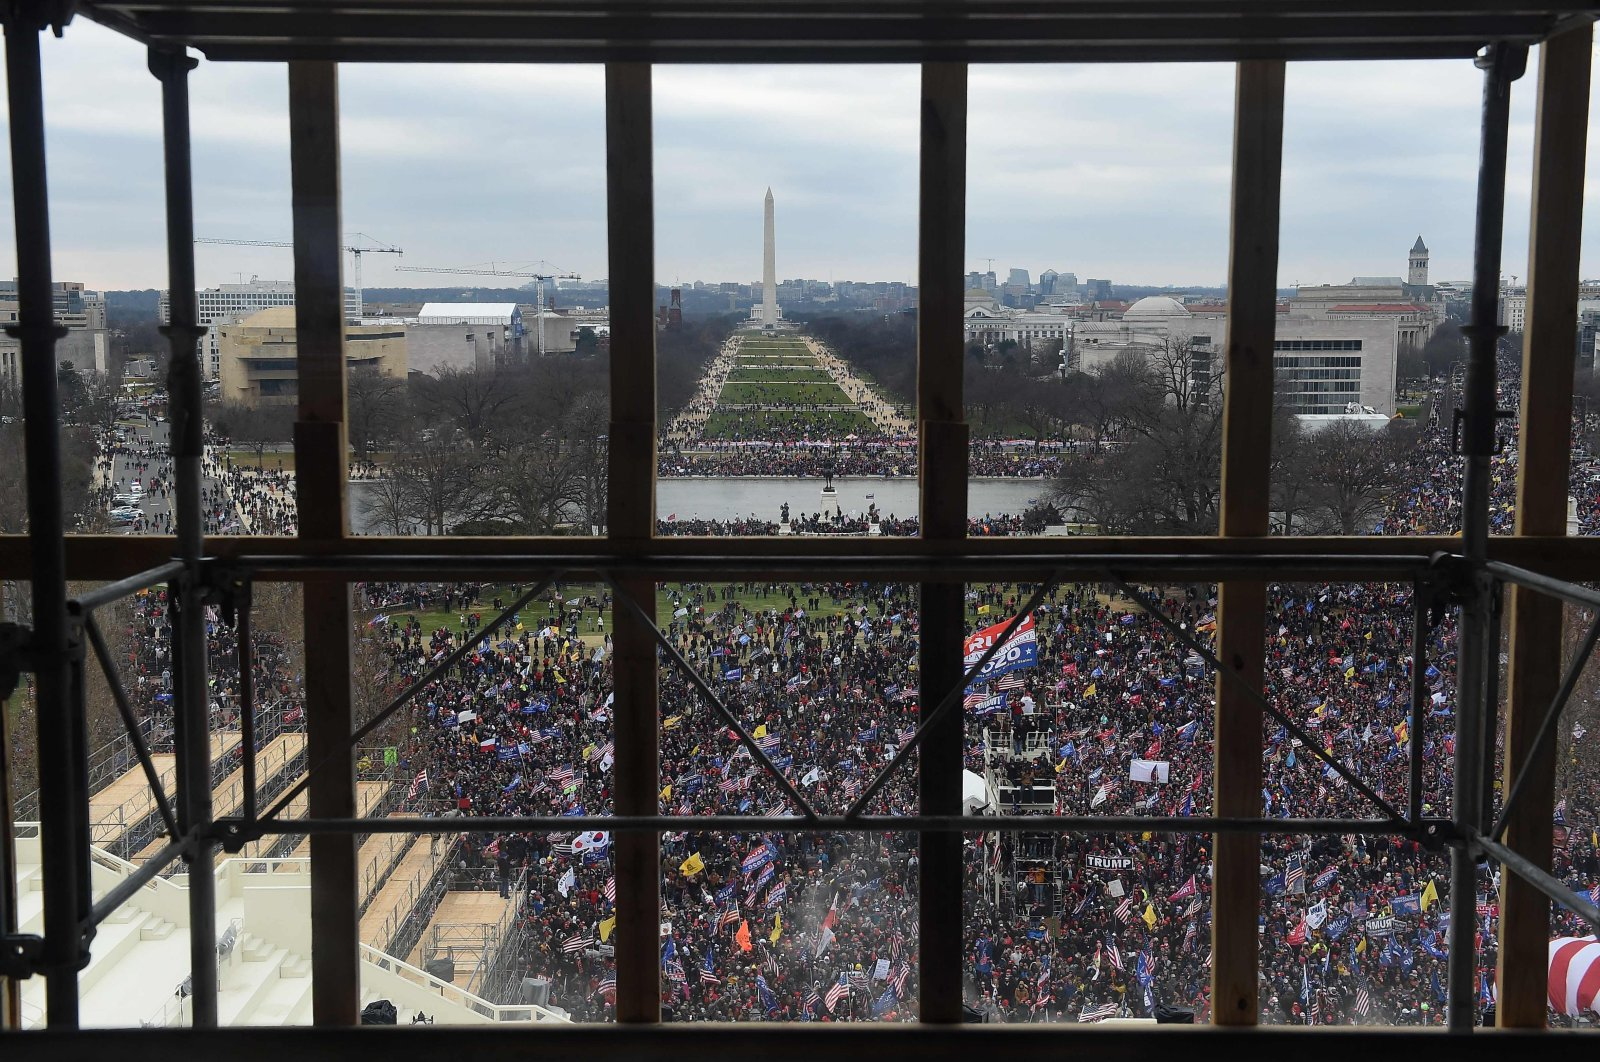 Supporters of U.S. President Donald Trump are seen from behind scaffolding as they gather outside the U.S. Capitol, Washington, D.C., U.S., Jan. 6, 2021. (AFP Photo)